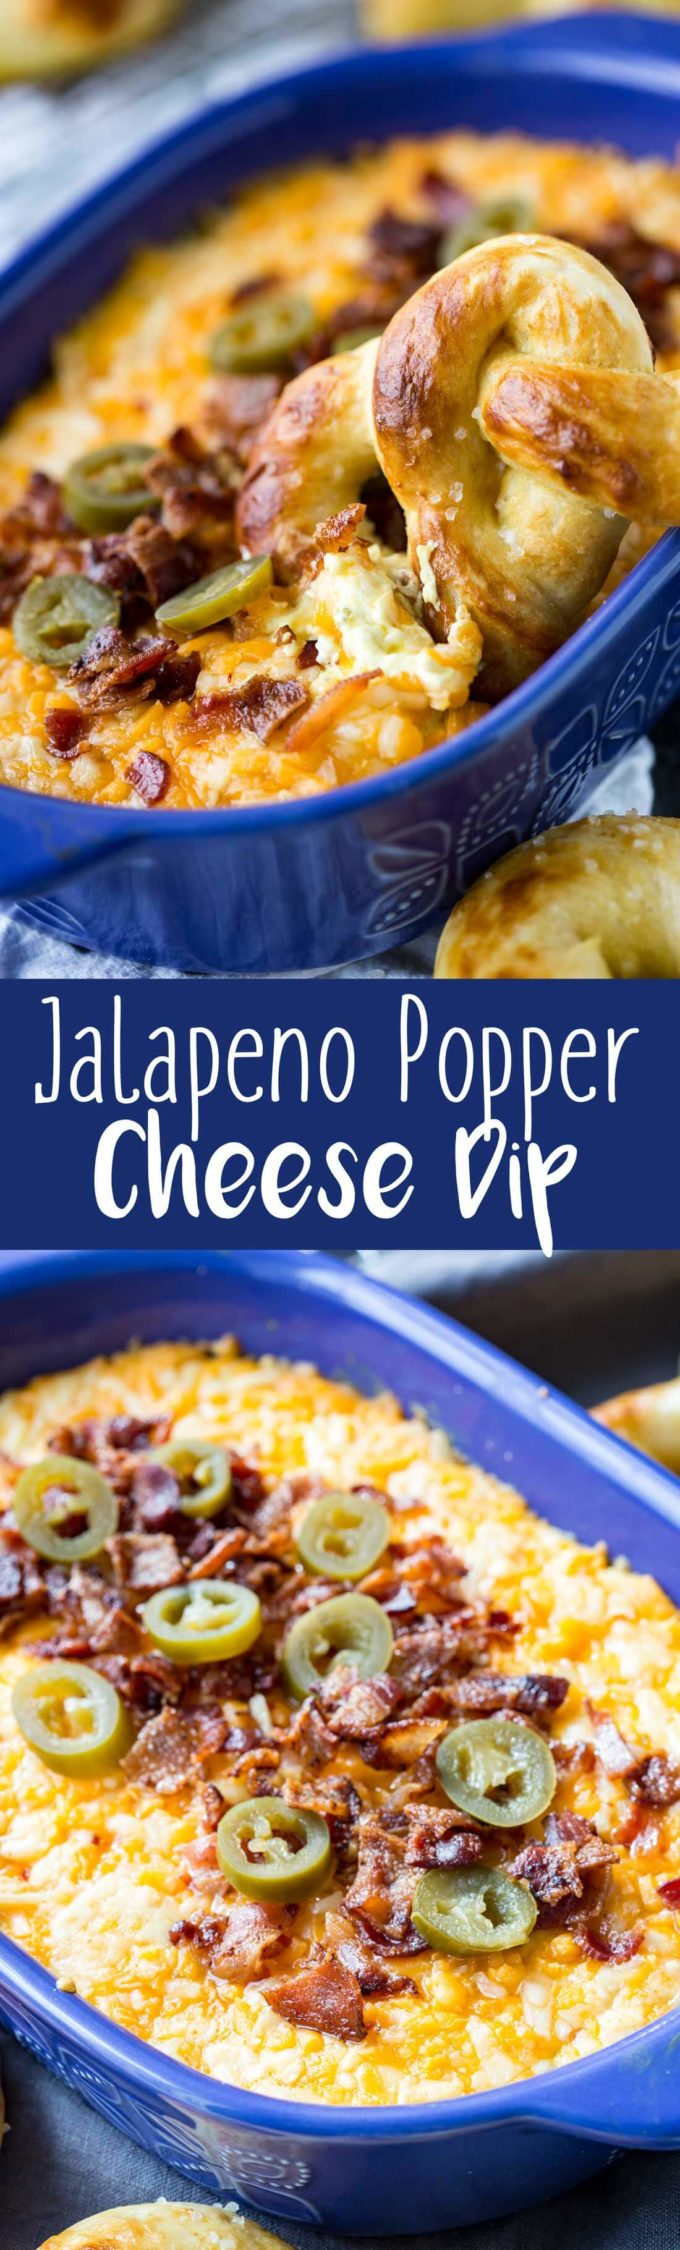 Baked jalapeno cheese dip